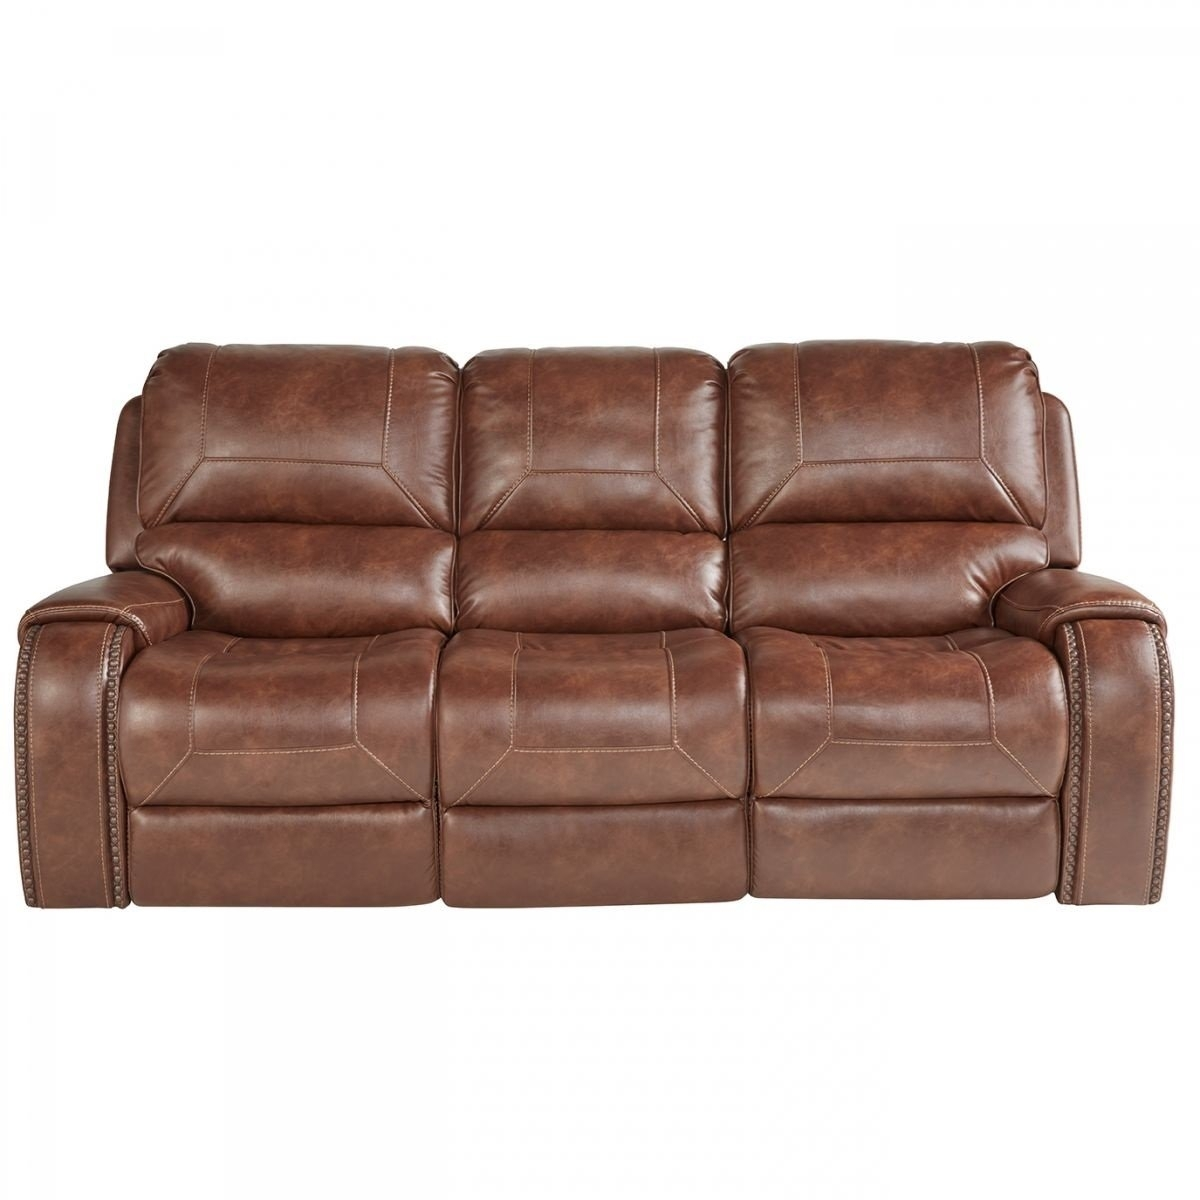 Buy Wescott Brown Reclining Sofa Online | Badcock & More Pertaining To Waylon 3 Piece Power Reclining Sectionals (View 3 of 25)